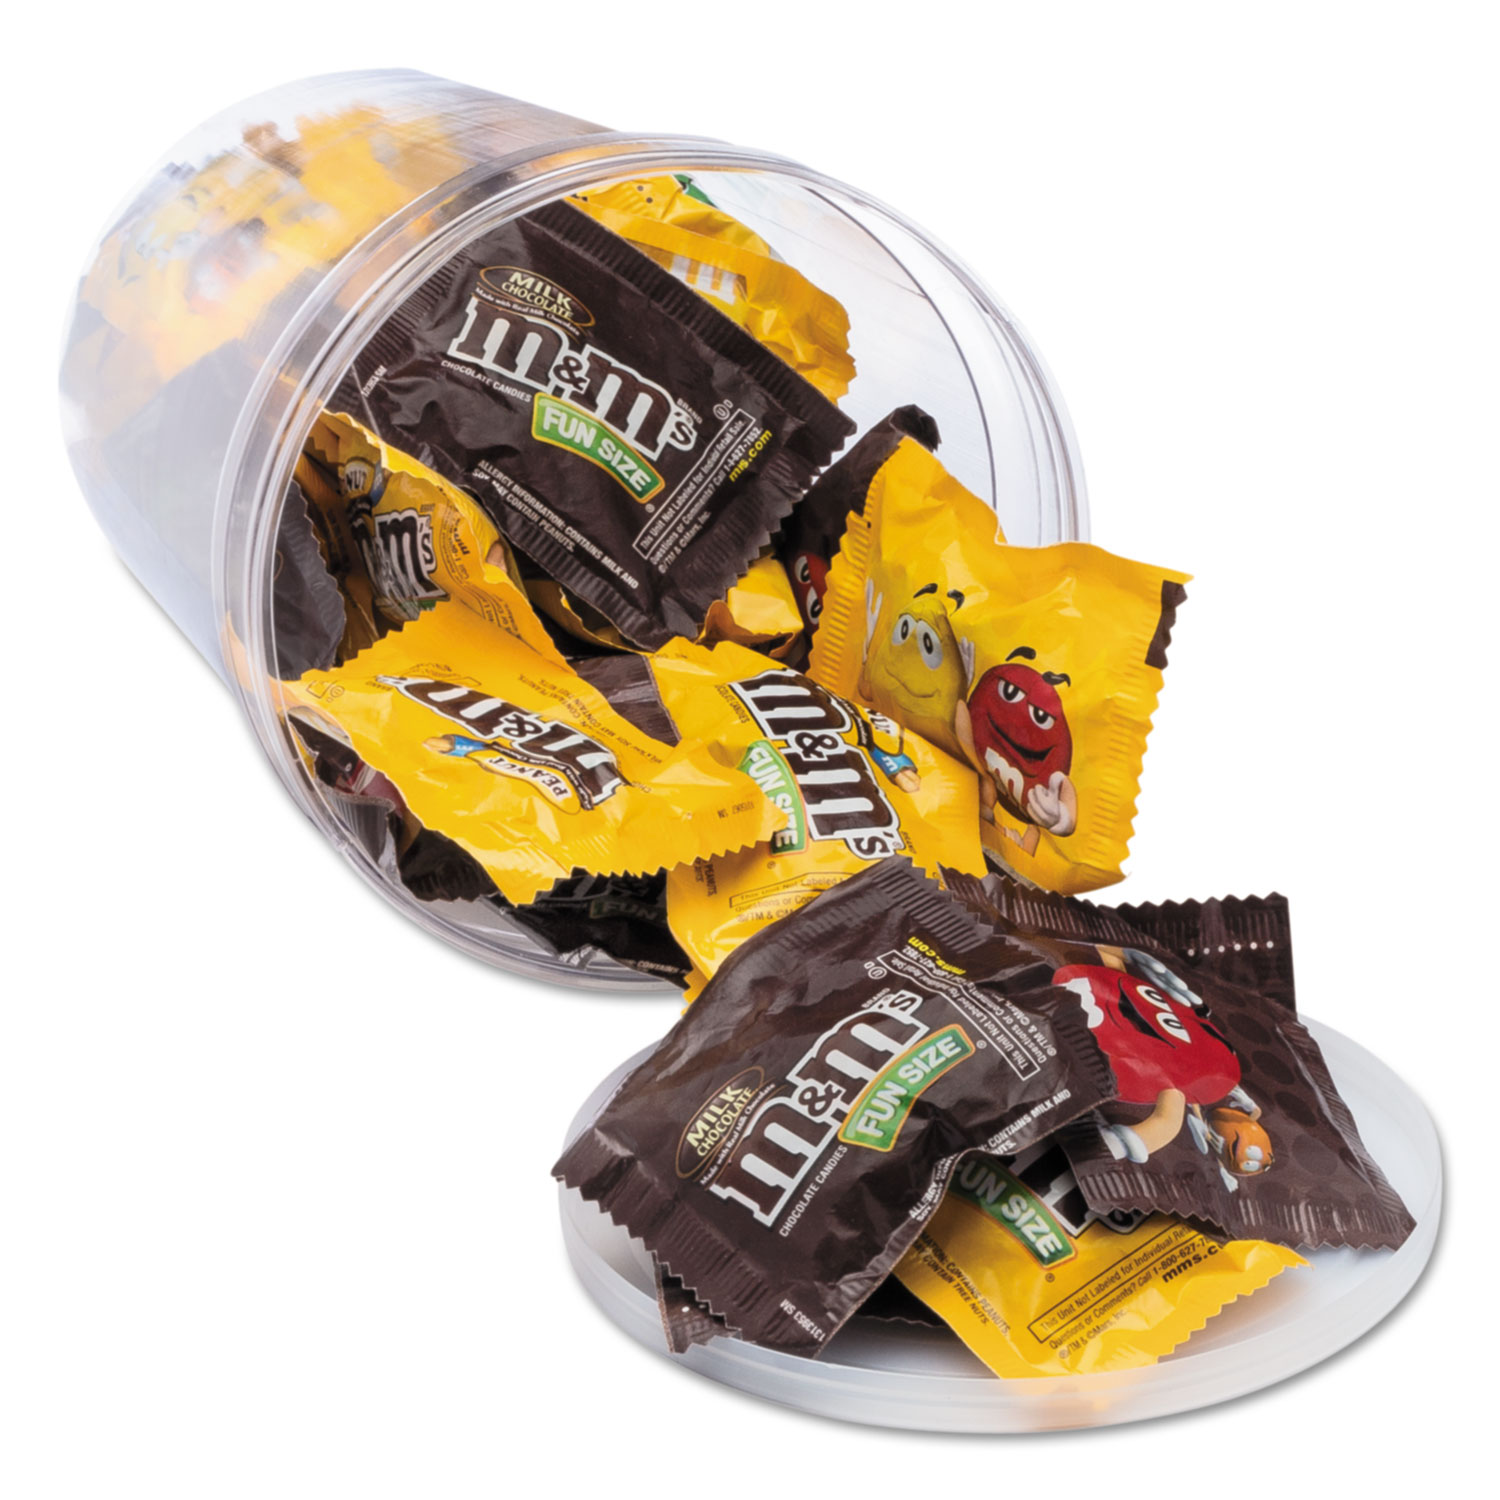 Candy Tubs, Chocolate and Peanut MandMs, 1.75 lb Resealable Plastic Tub